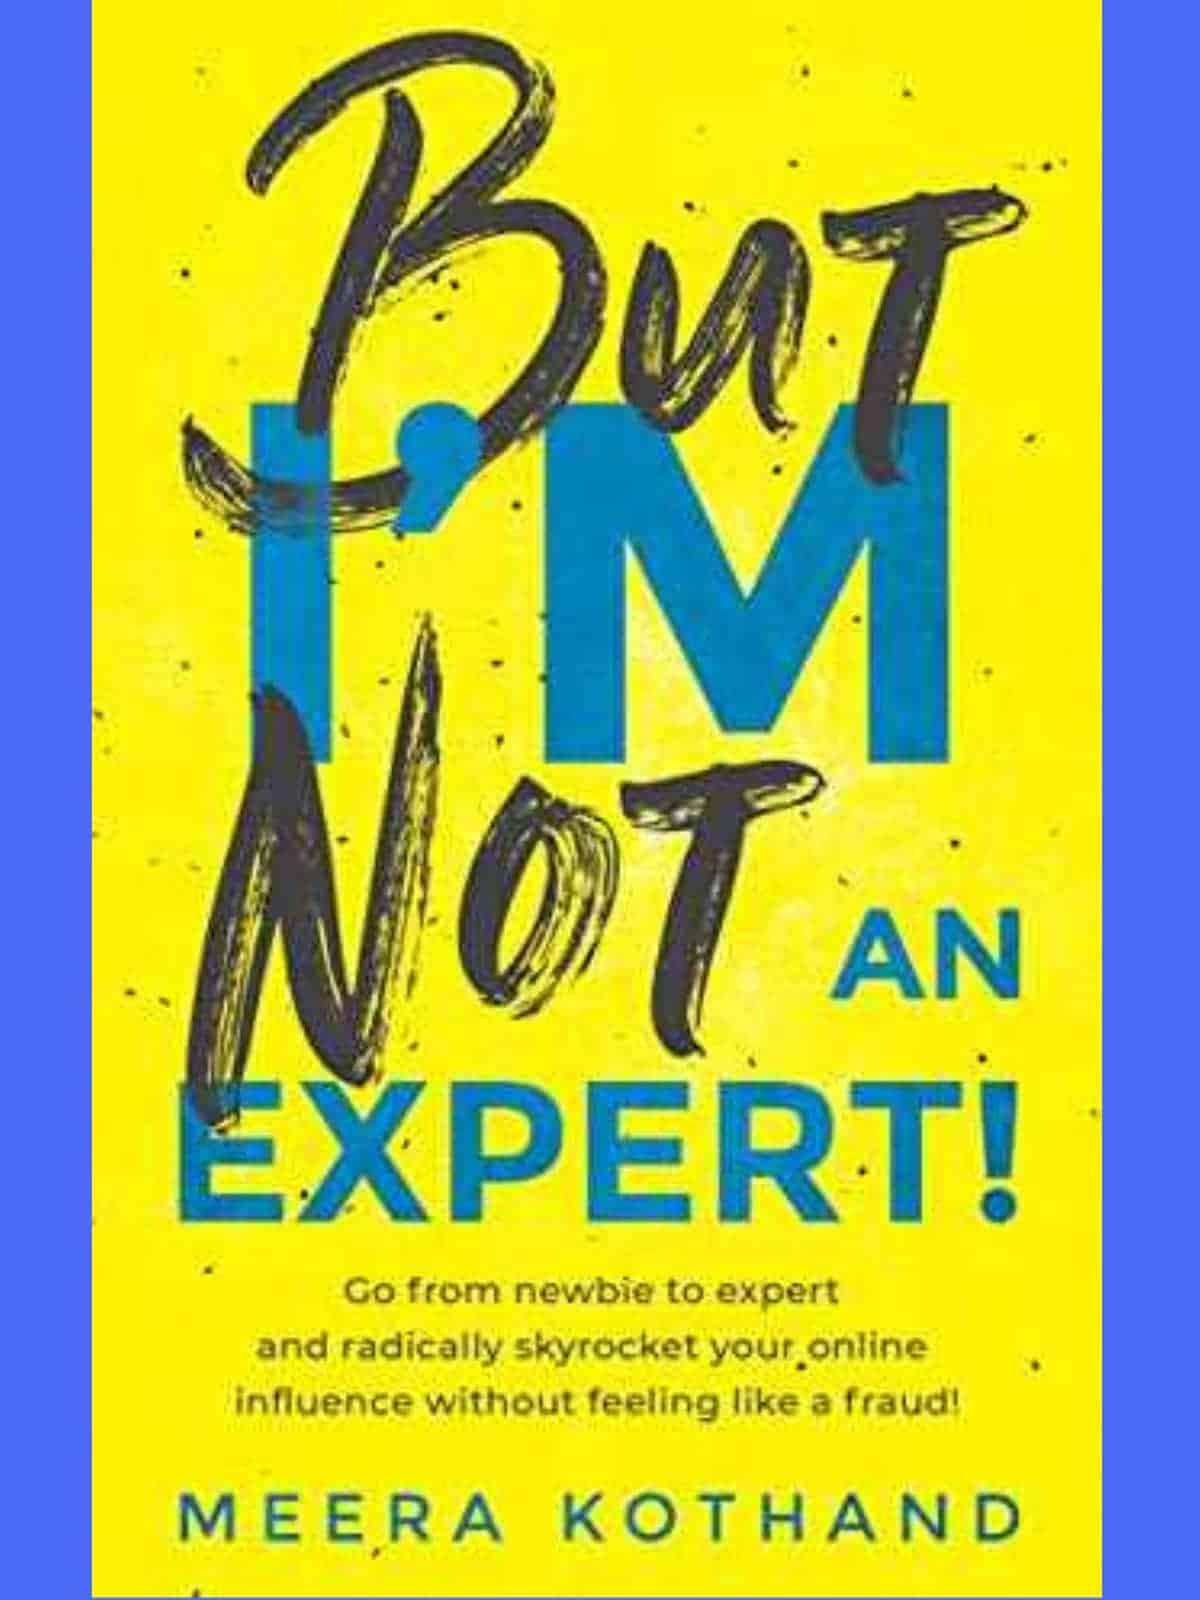 But I'm Not An Expert! by Meera Kothand ($2.99) | Amazon's Best Selling Tech Kindle eBooks